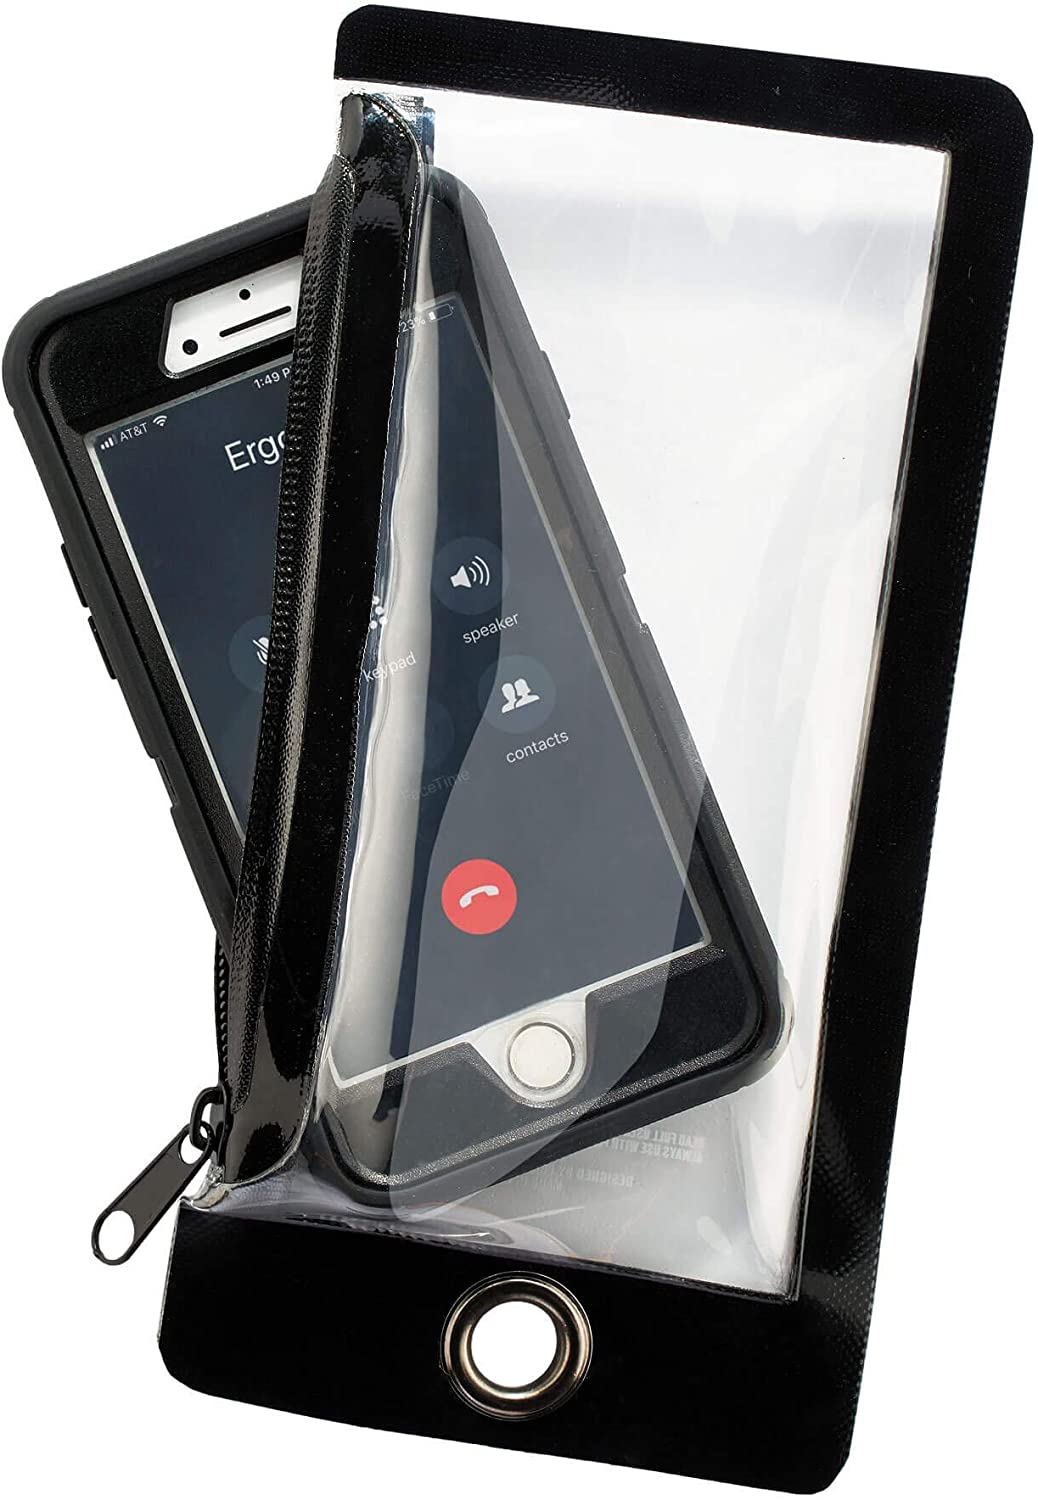 Water Resistant Phone Pouch Attache Zippered Courier All items free shipping shipping free Cell Sleeve